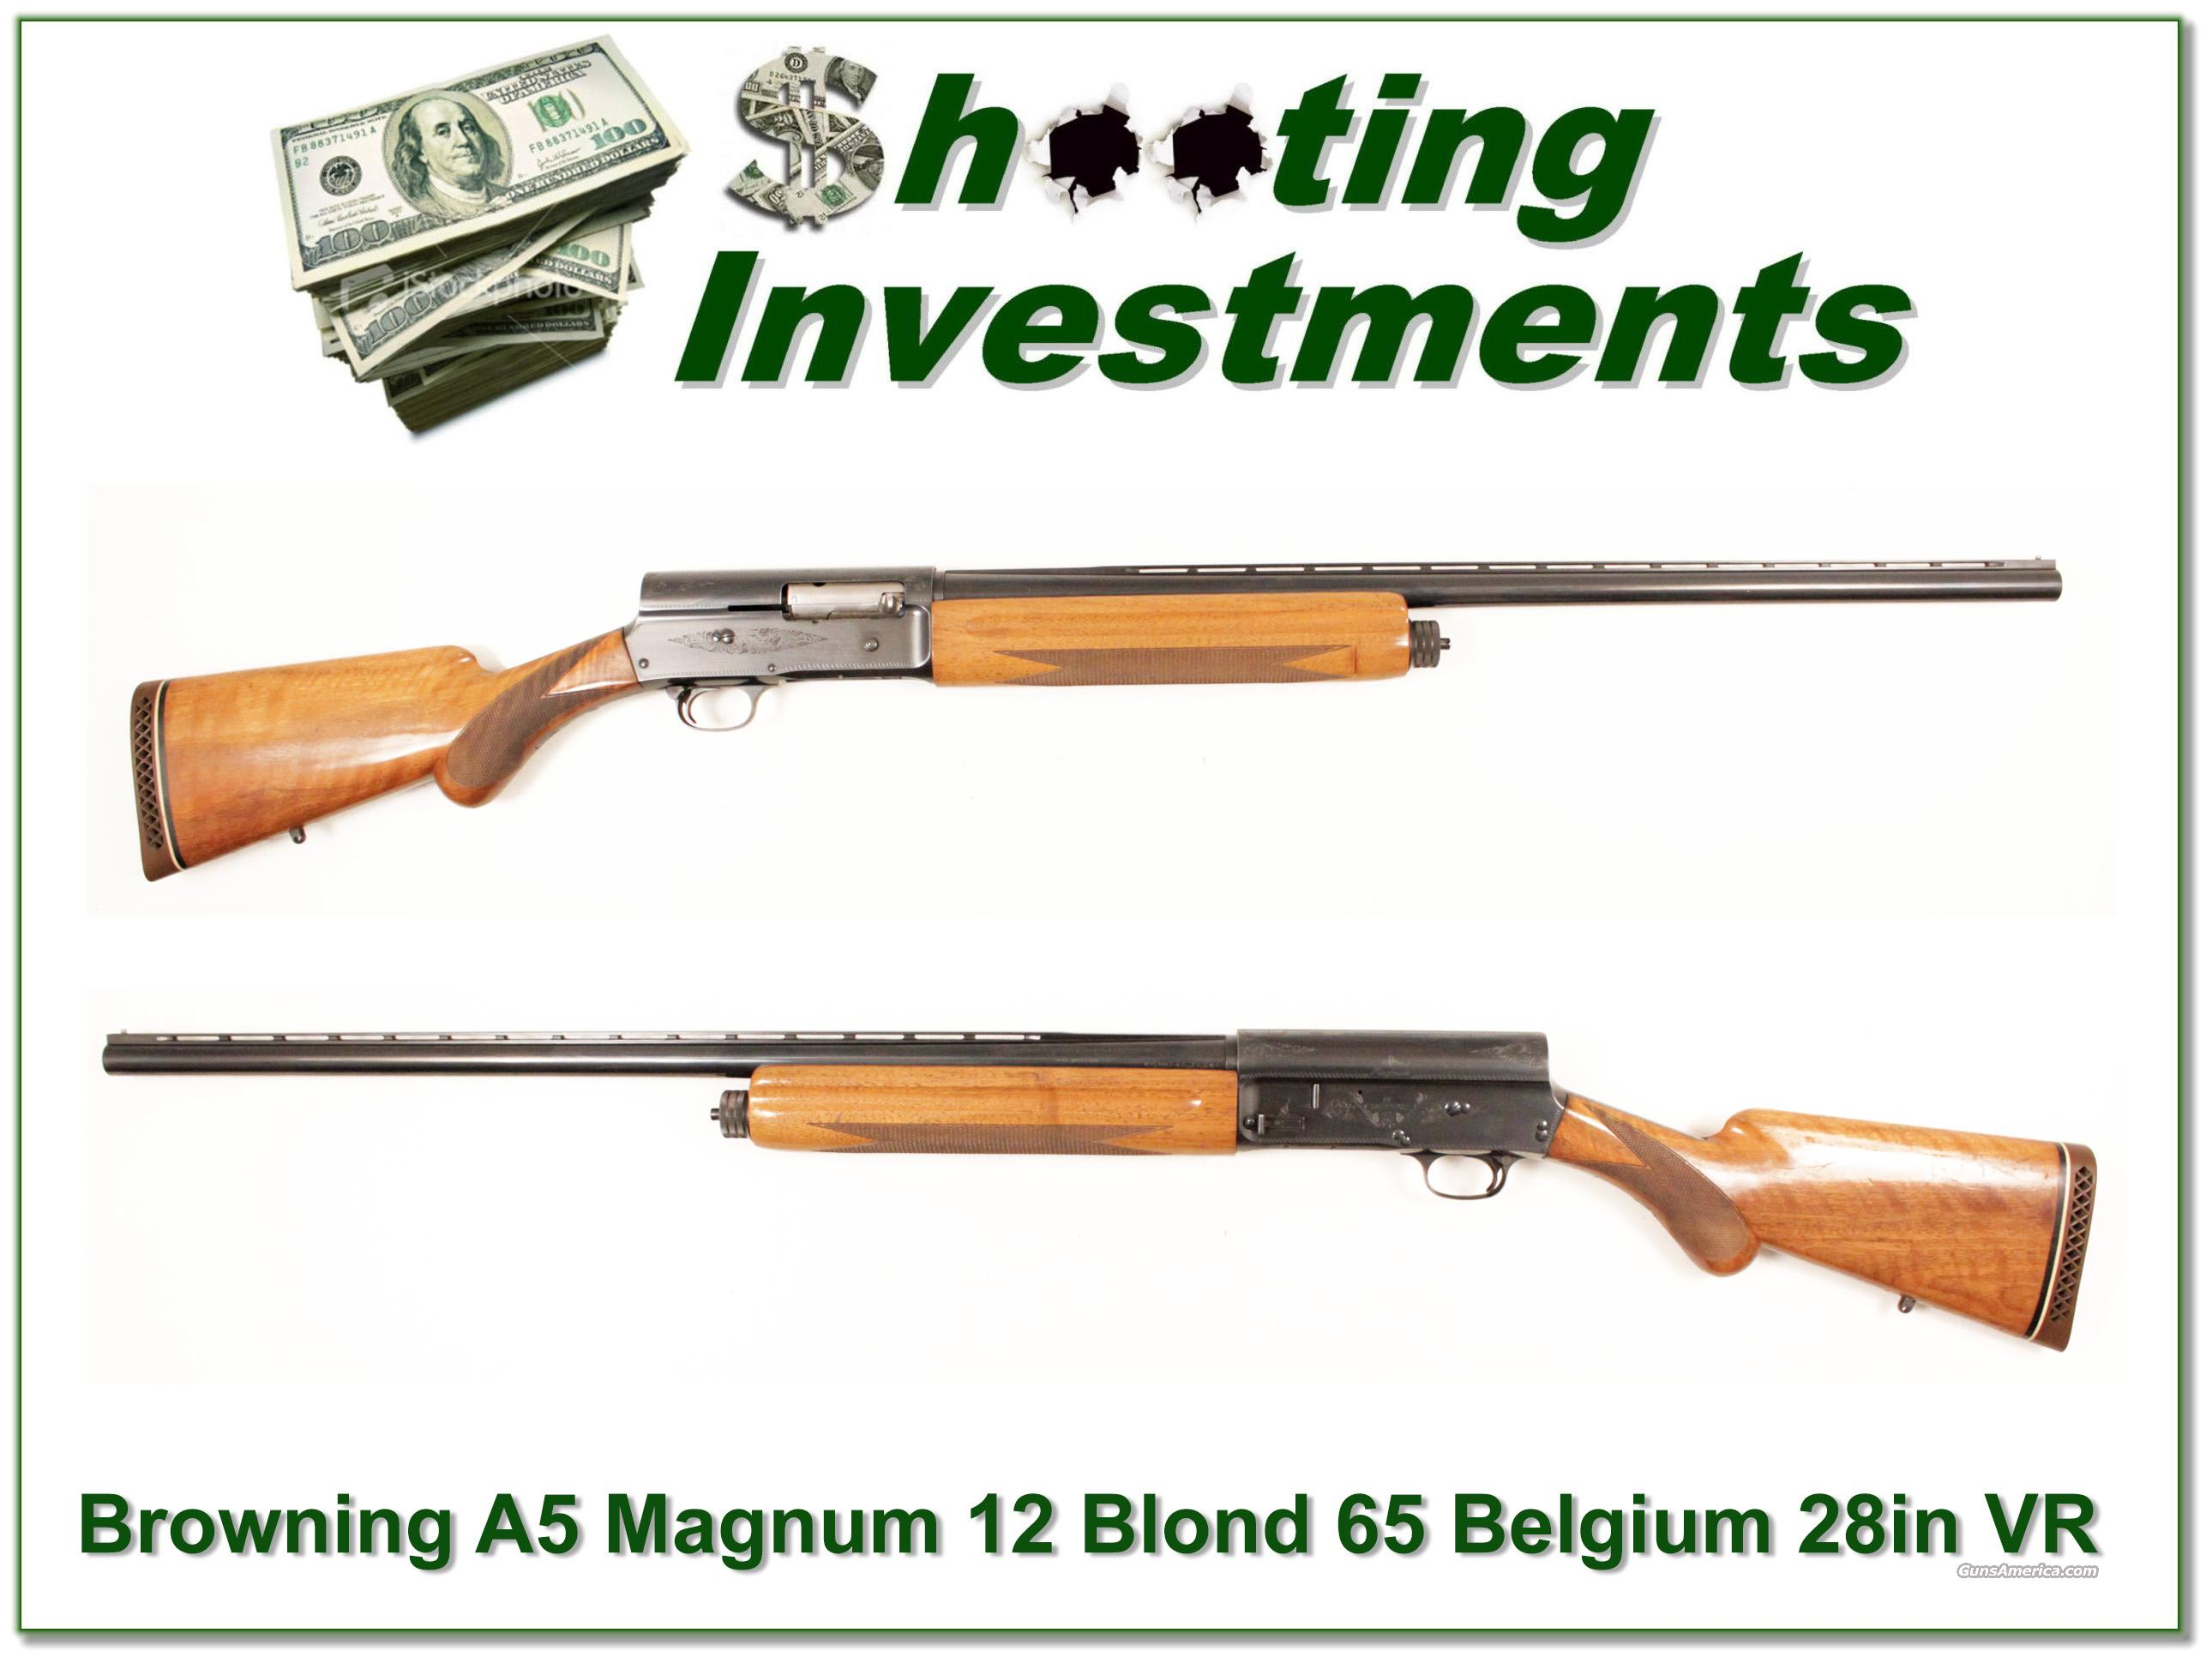 Browning A5 Magnum 12 Belgium Blond 28in VR  Guns > Shotguns > Browning Shotguns > Autoloaders > Hunting